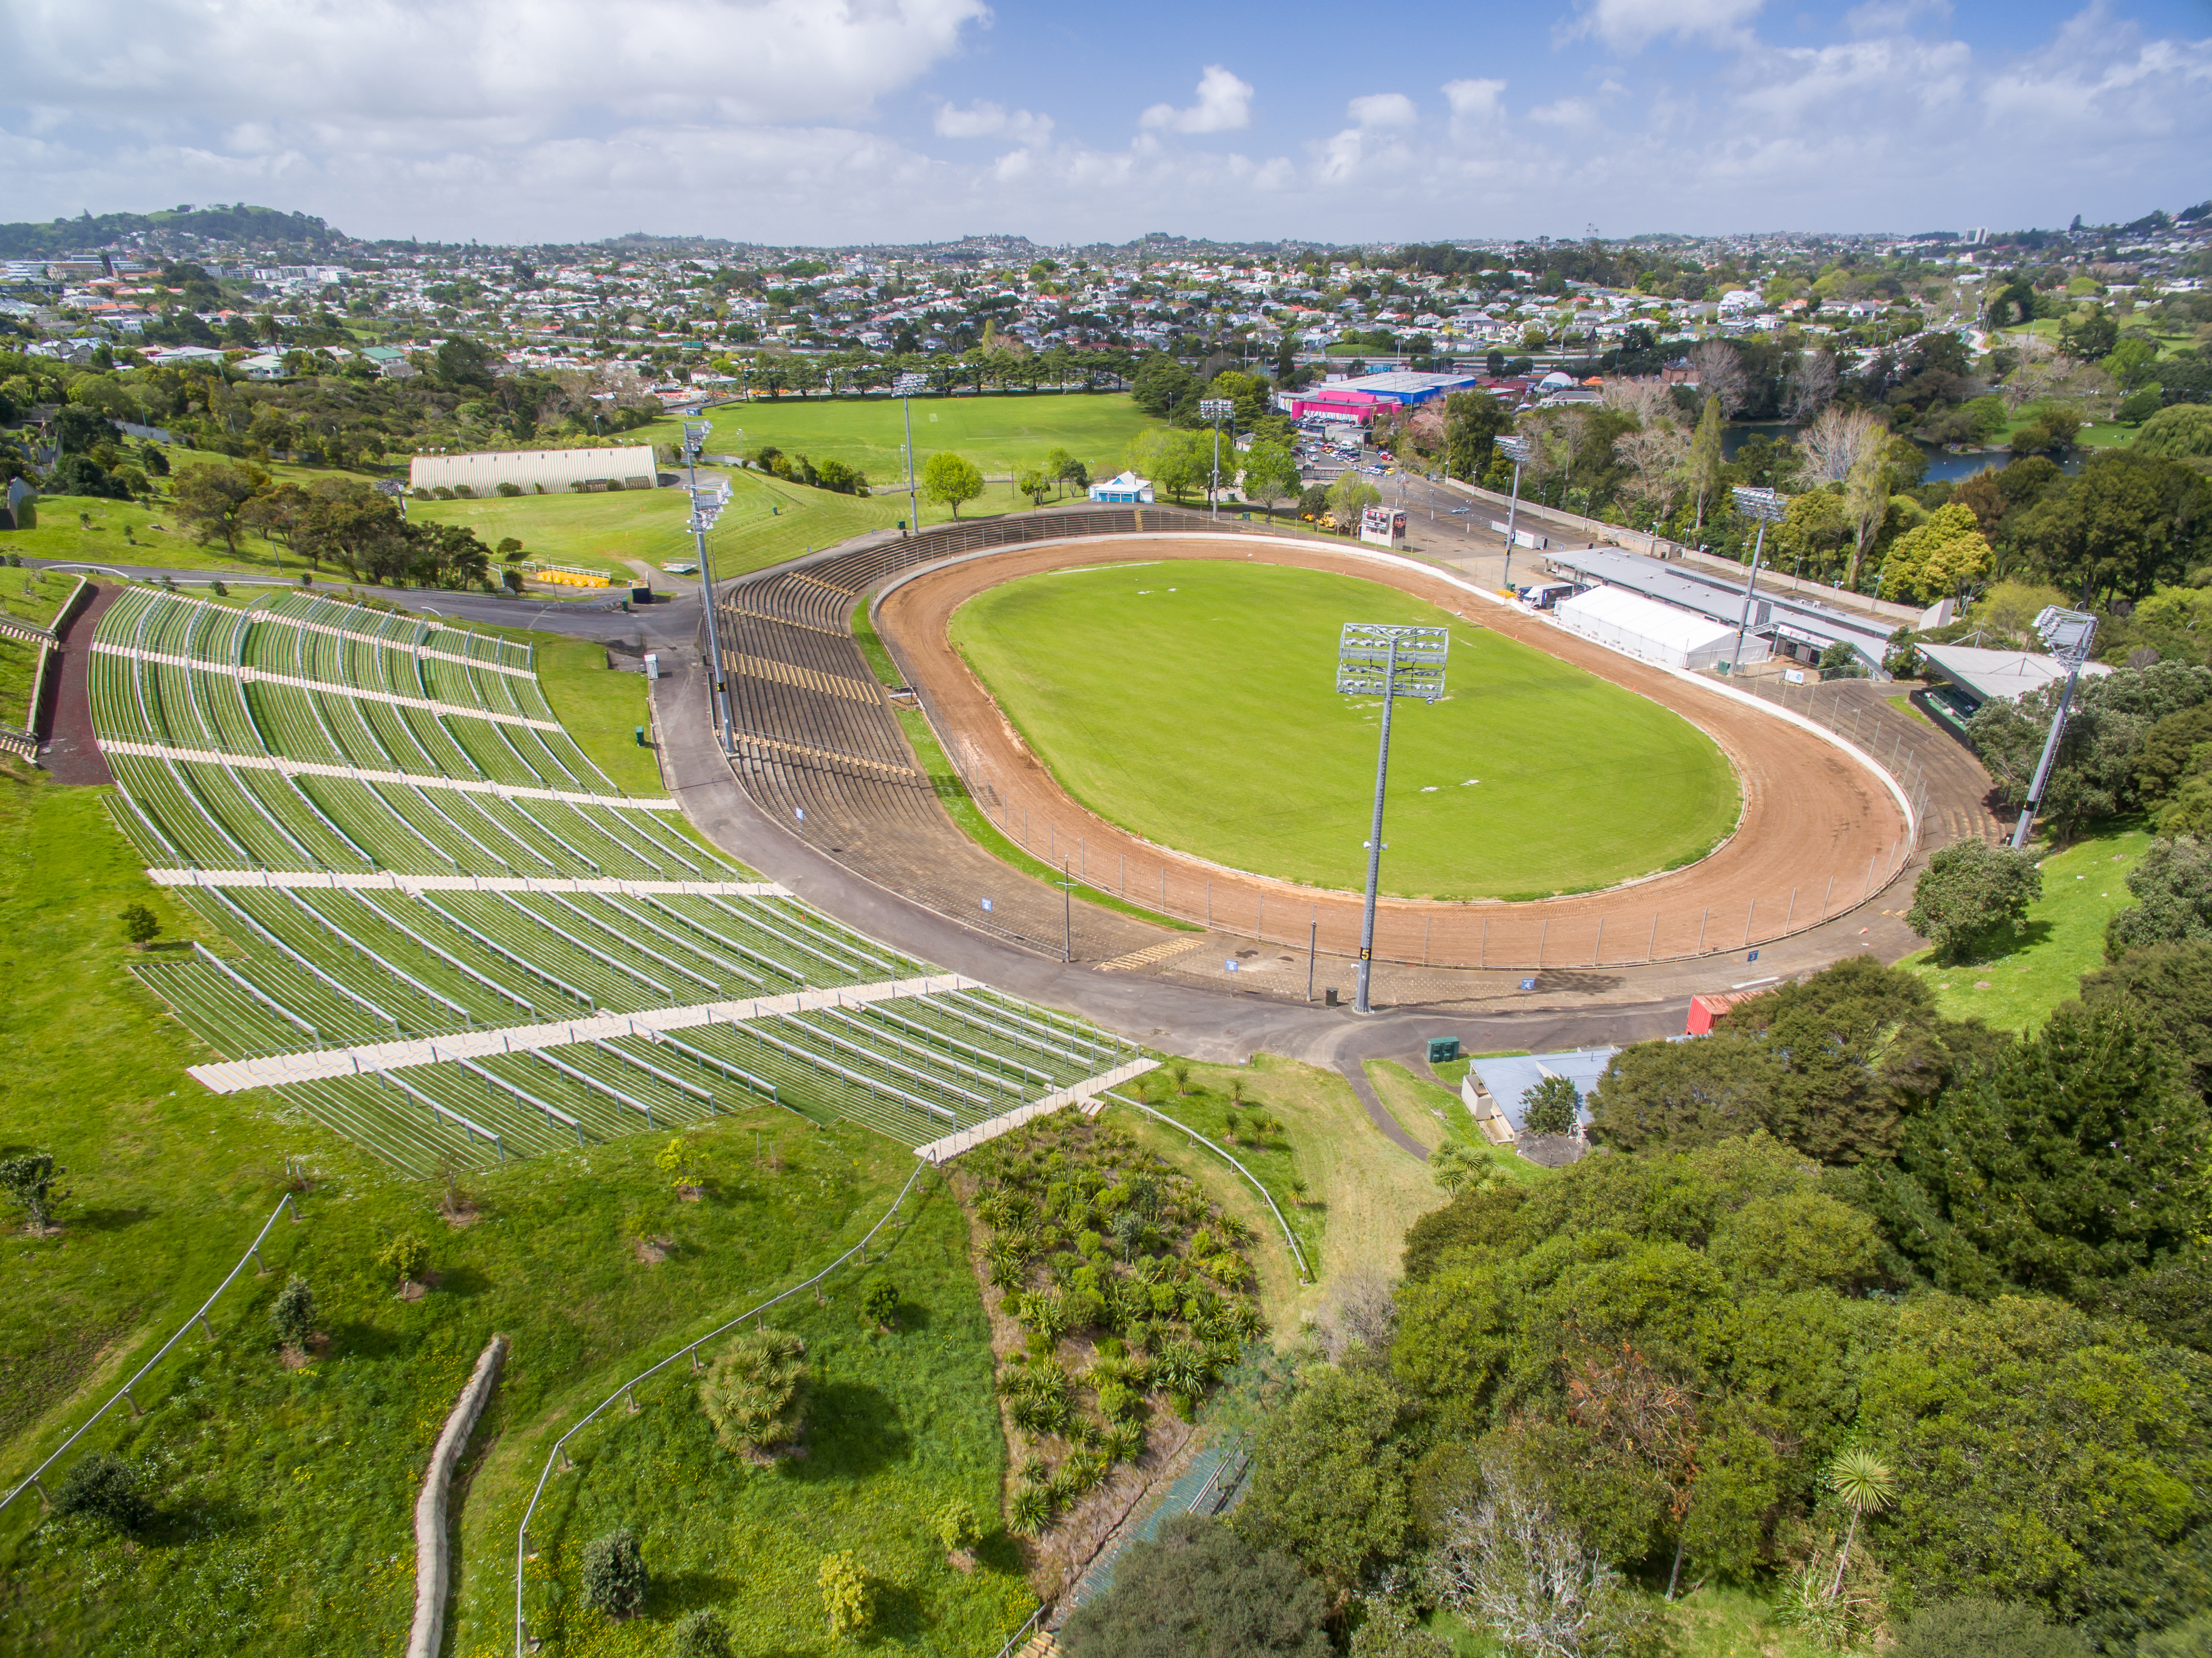 RFA announces successful tender for Speedway operations at Western Springs Stadium